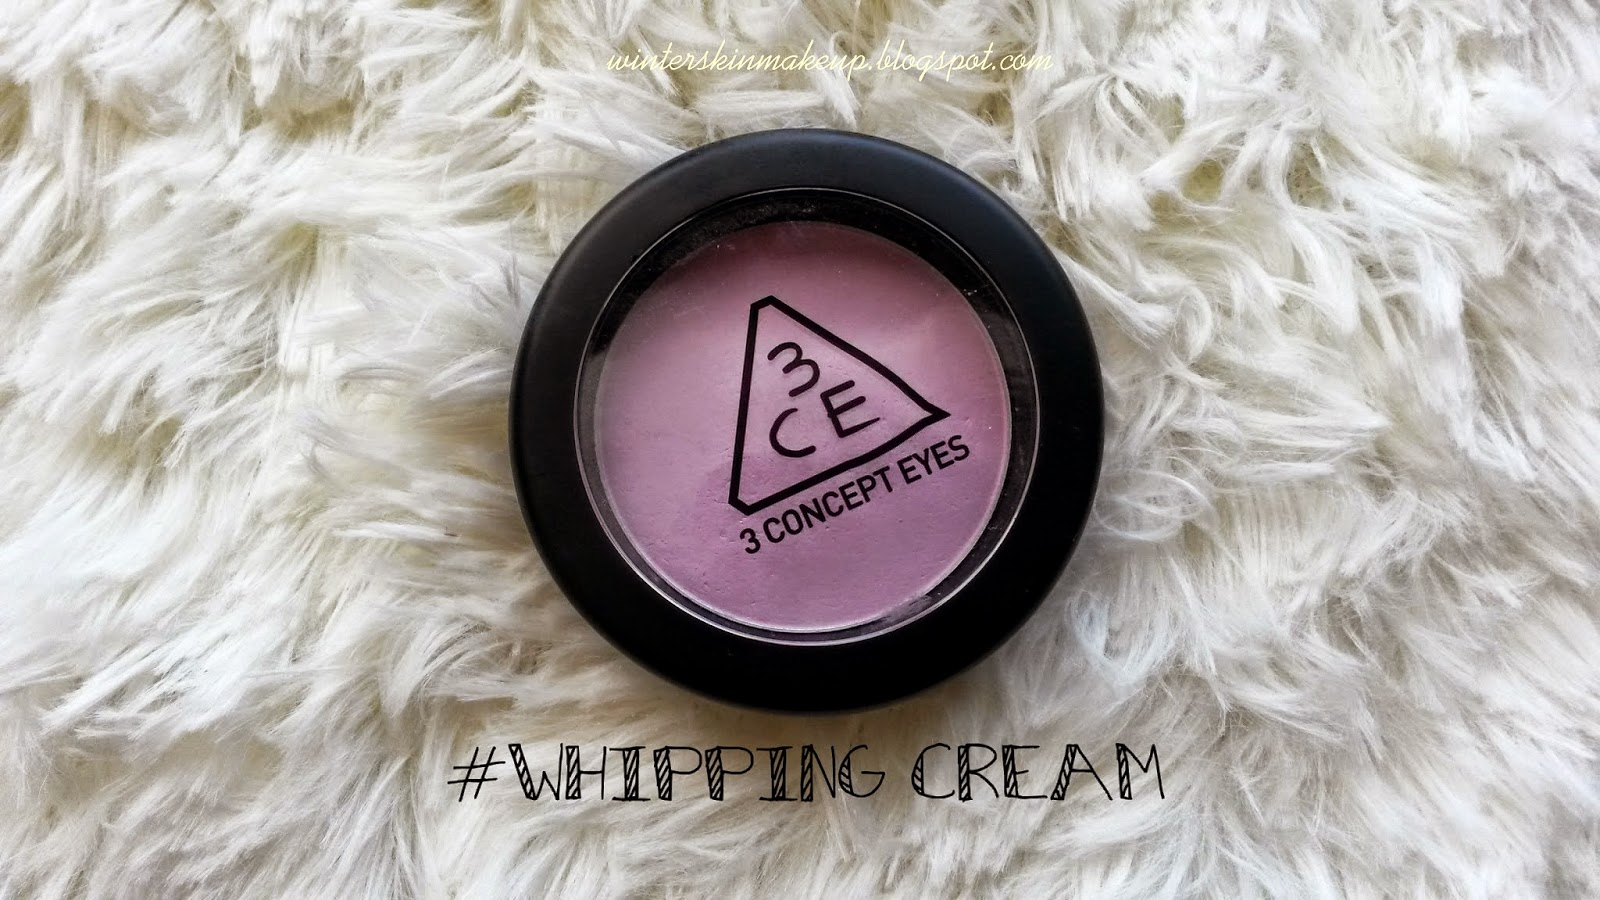 3 CONCEPT EYES Face Blush Whipping Cream Swatches